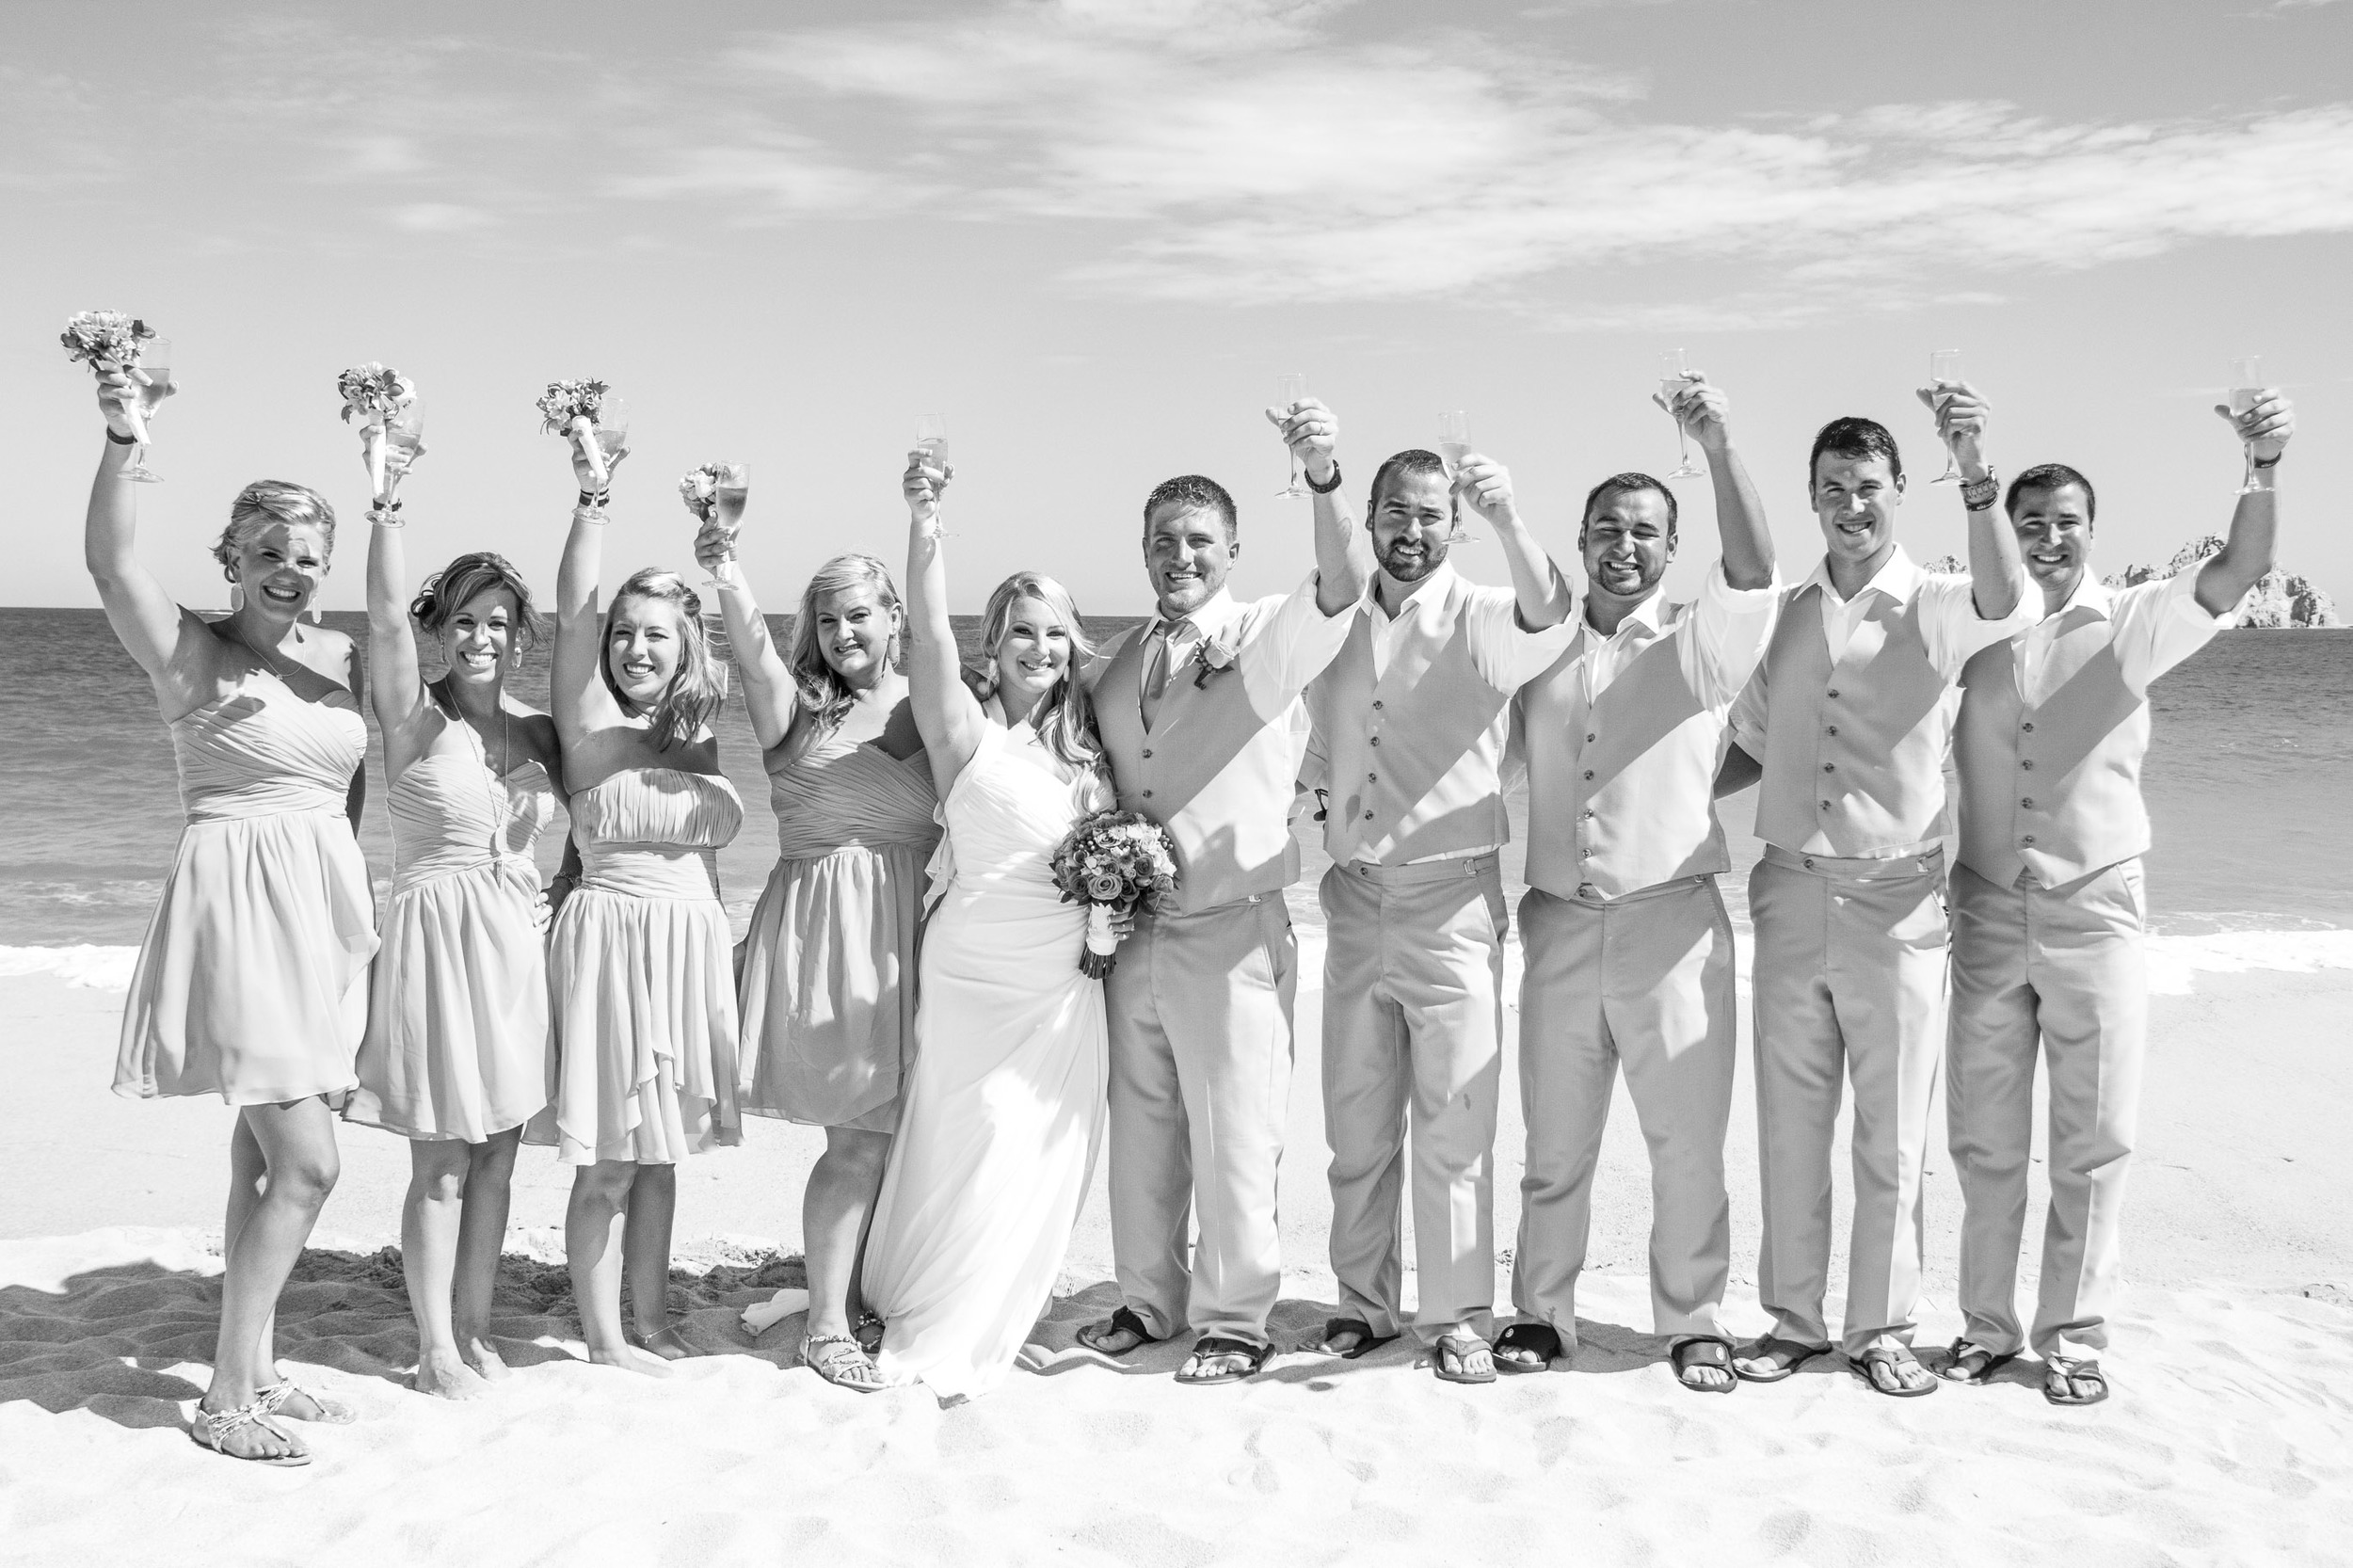 LangfordWeddingCabo2015-0220.jpg